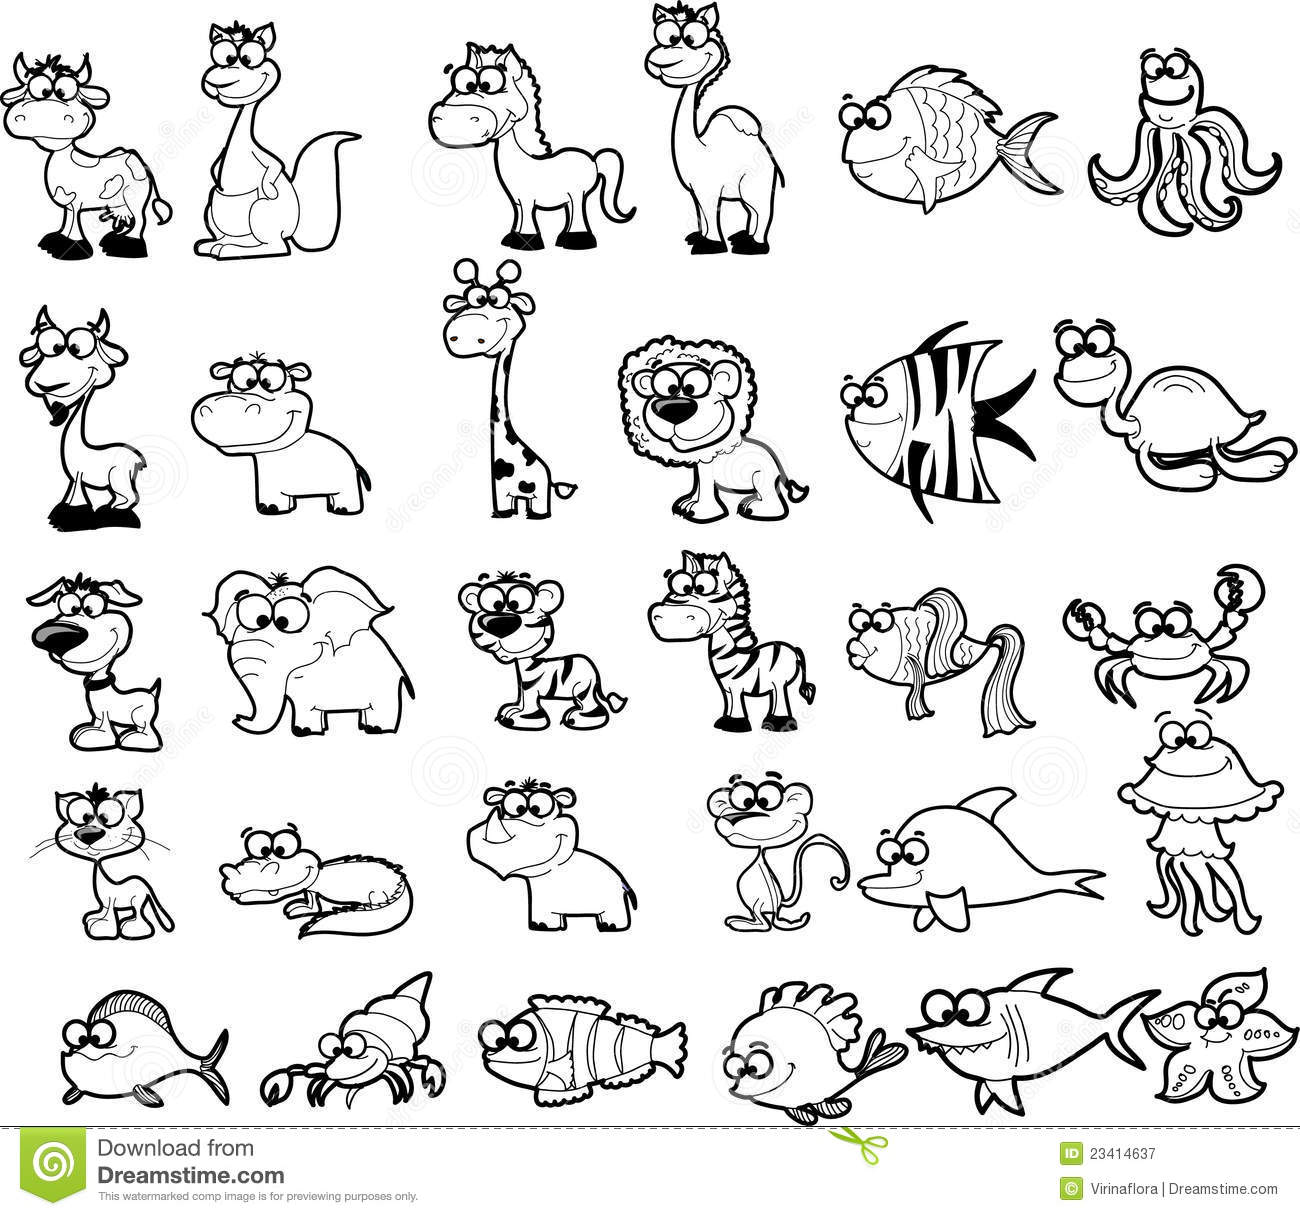 Big Set Of Black And White Cartoon Animalsvector Illustration Picture